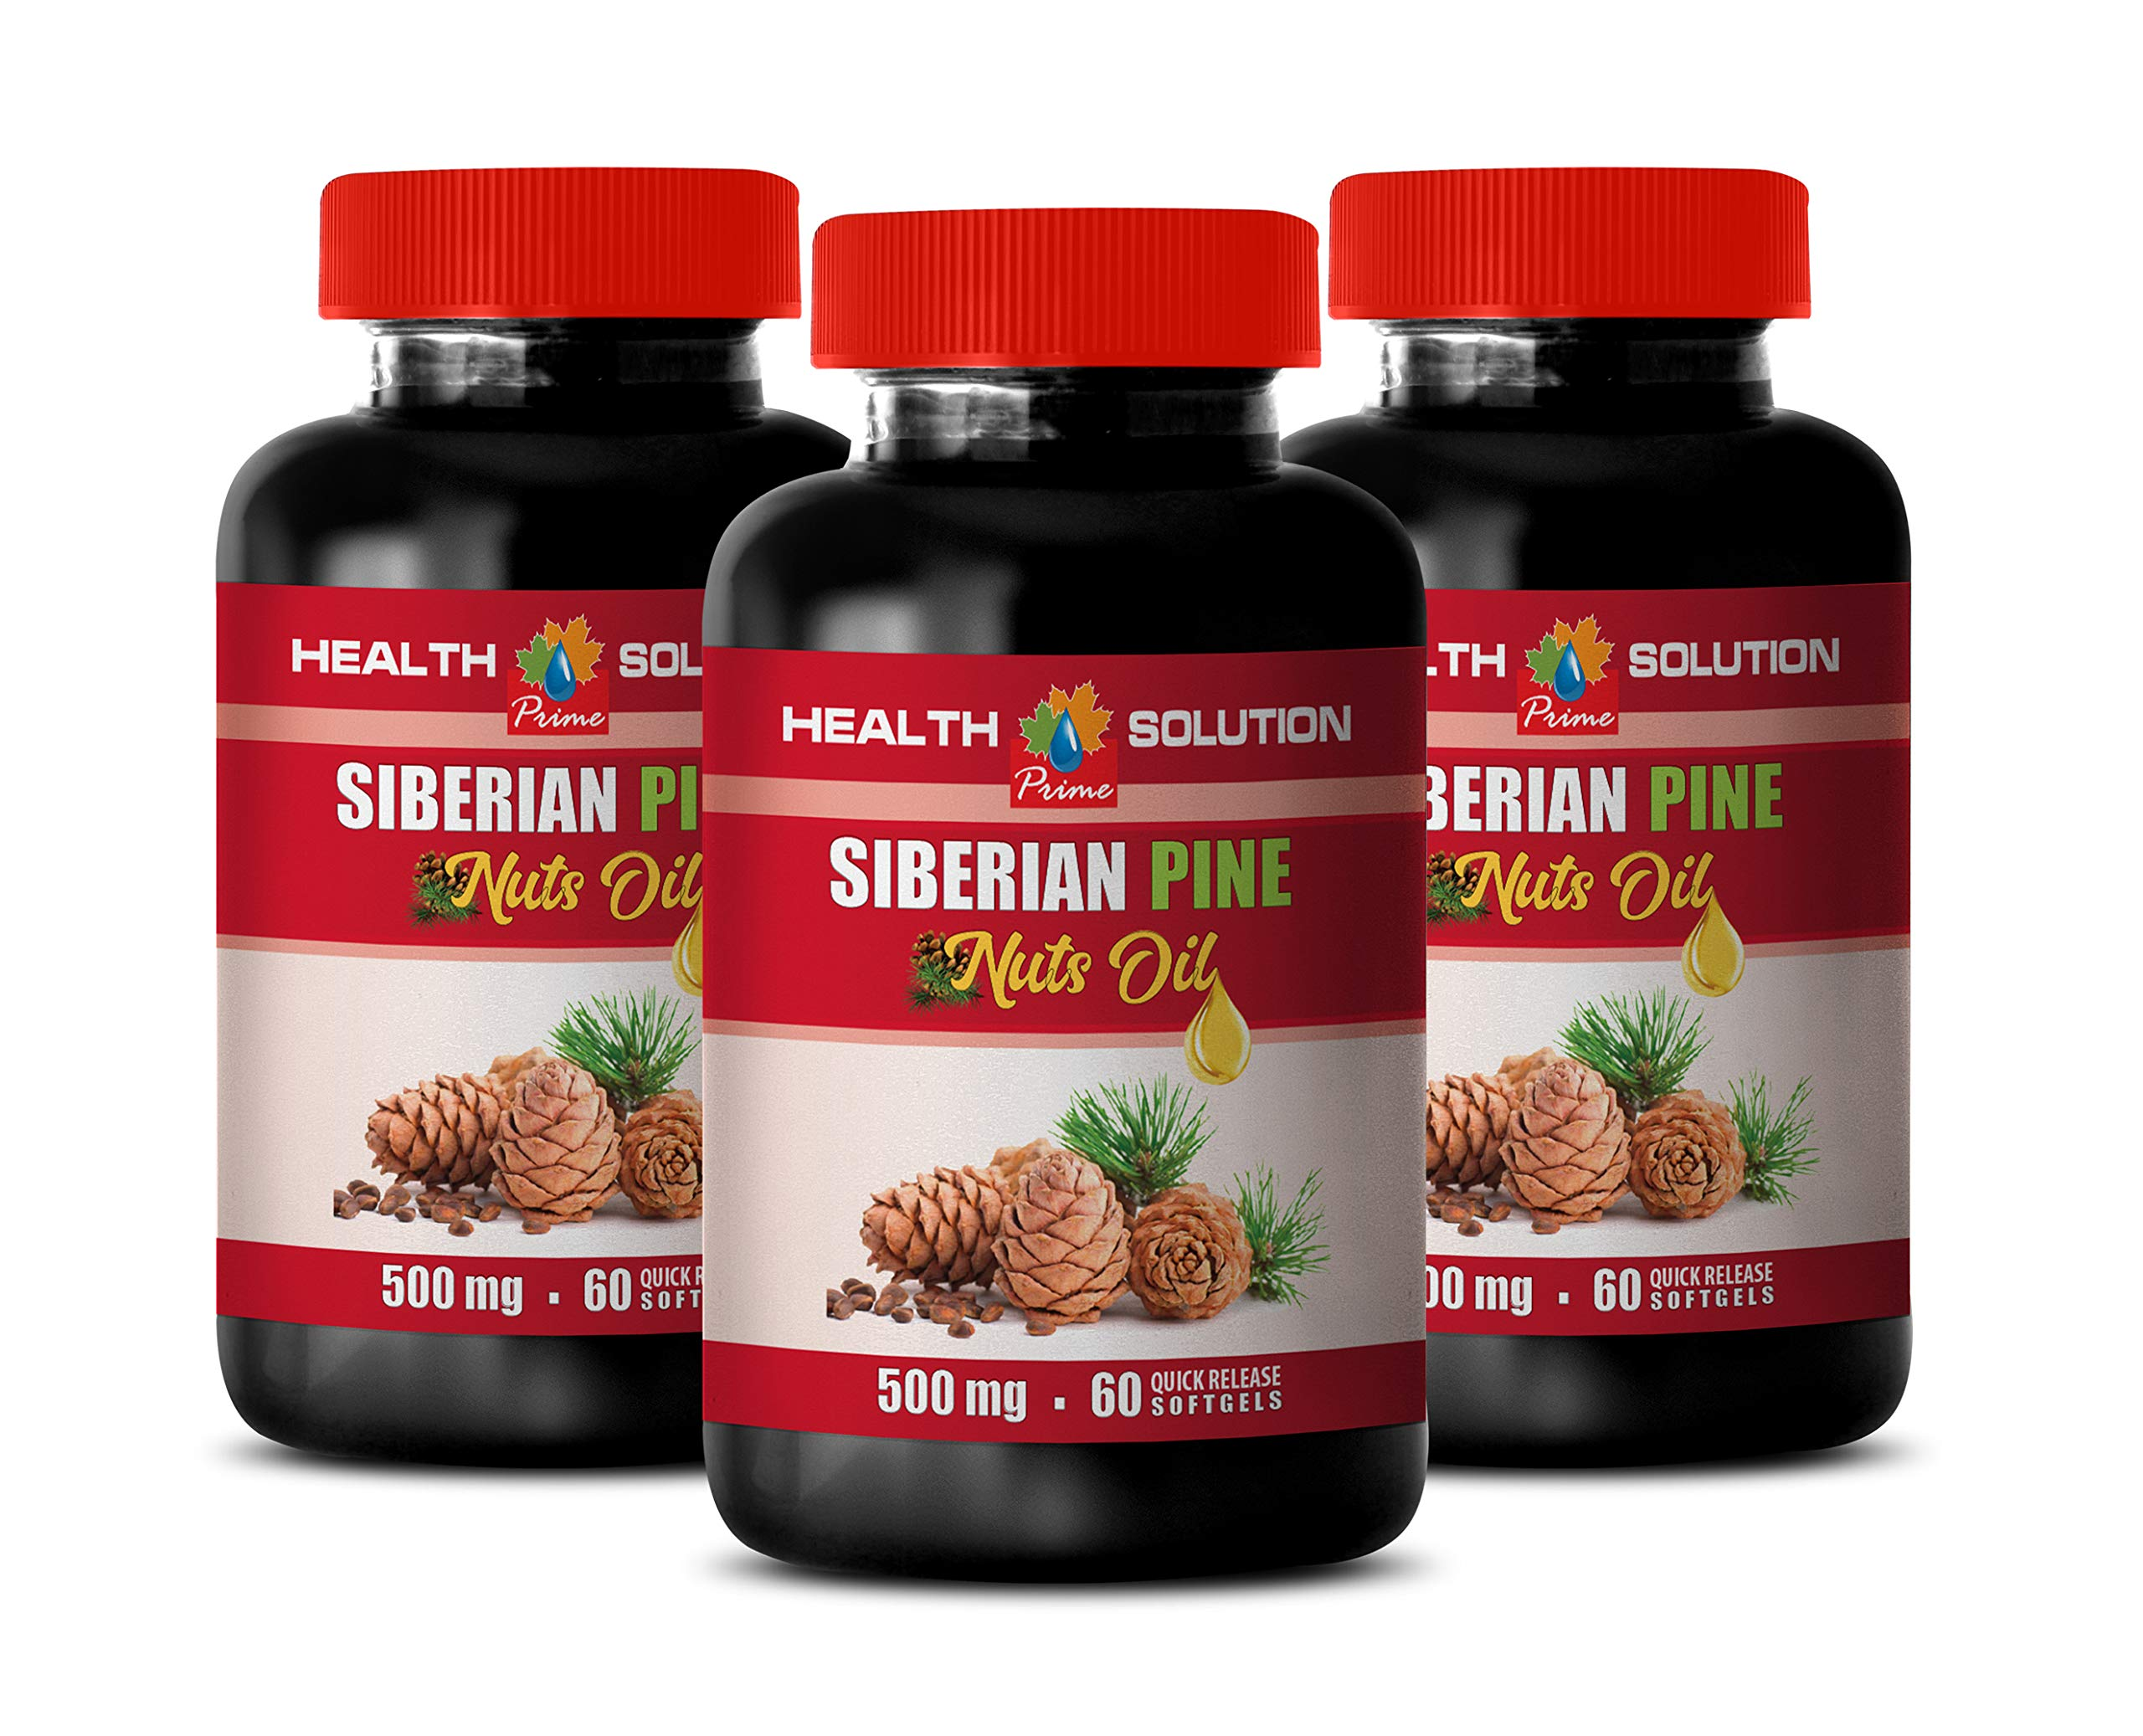 Energy Booster for Women - Siberian Pine NUT Oil - Digestive Supplements for Weight Loss - 3 Bottles 180 Softgels